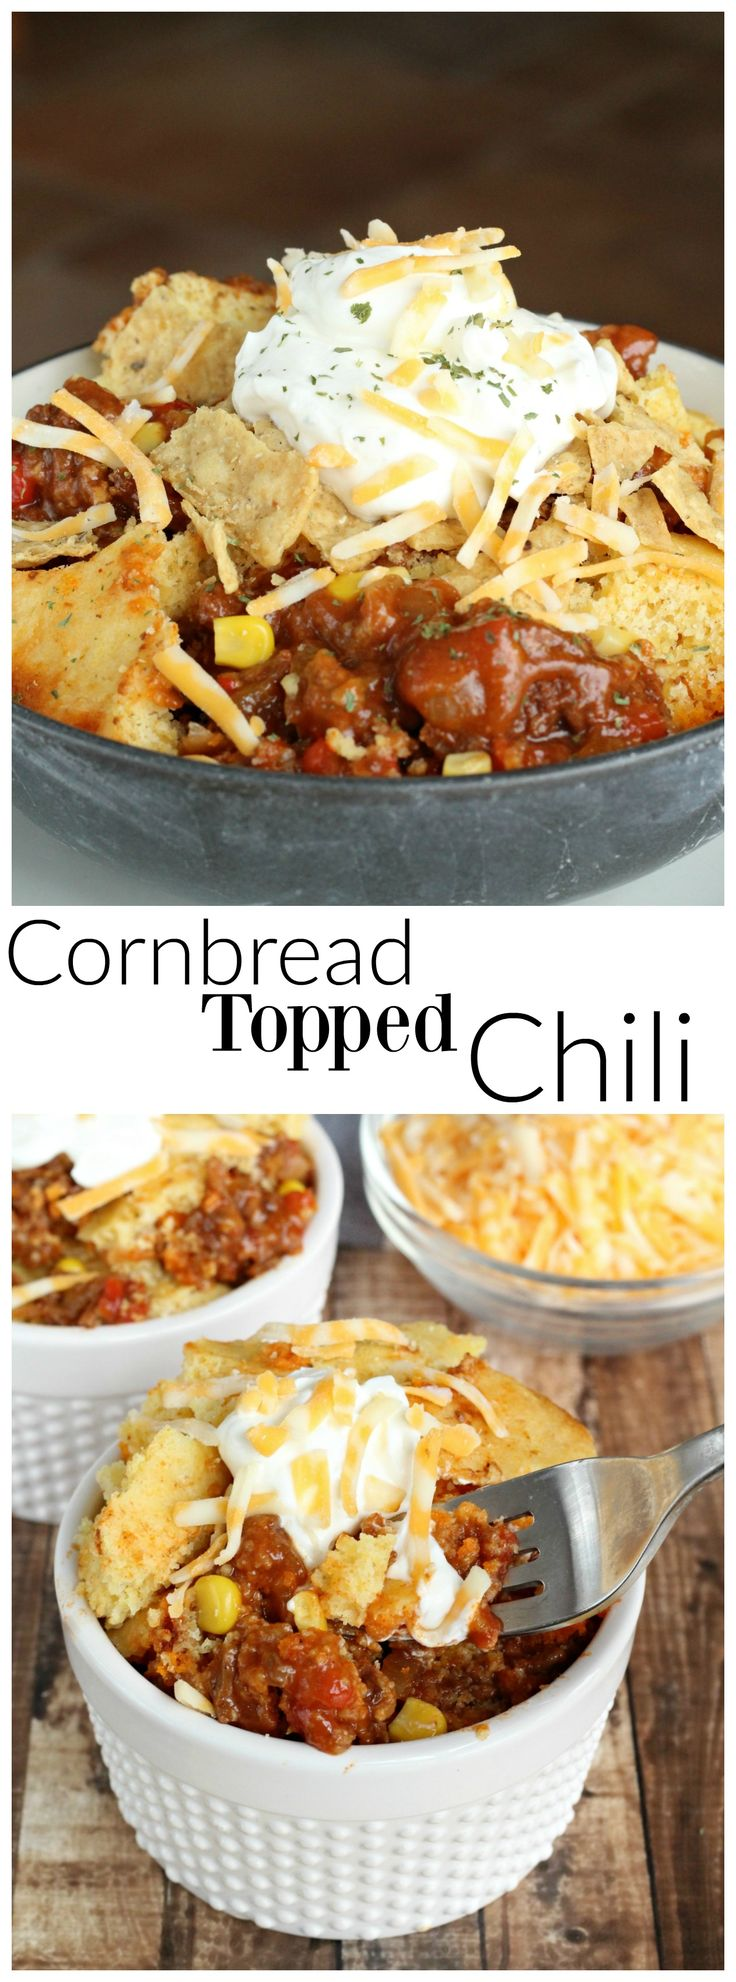 Chili and cheesy cornbread cooked together in a slow cooker.